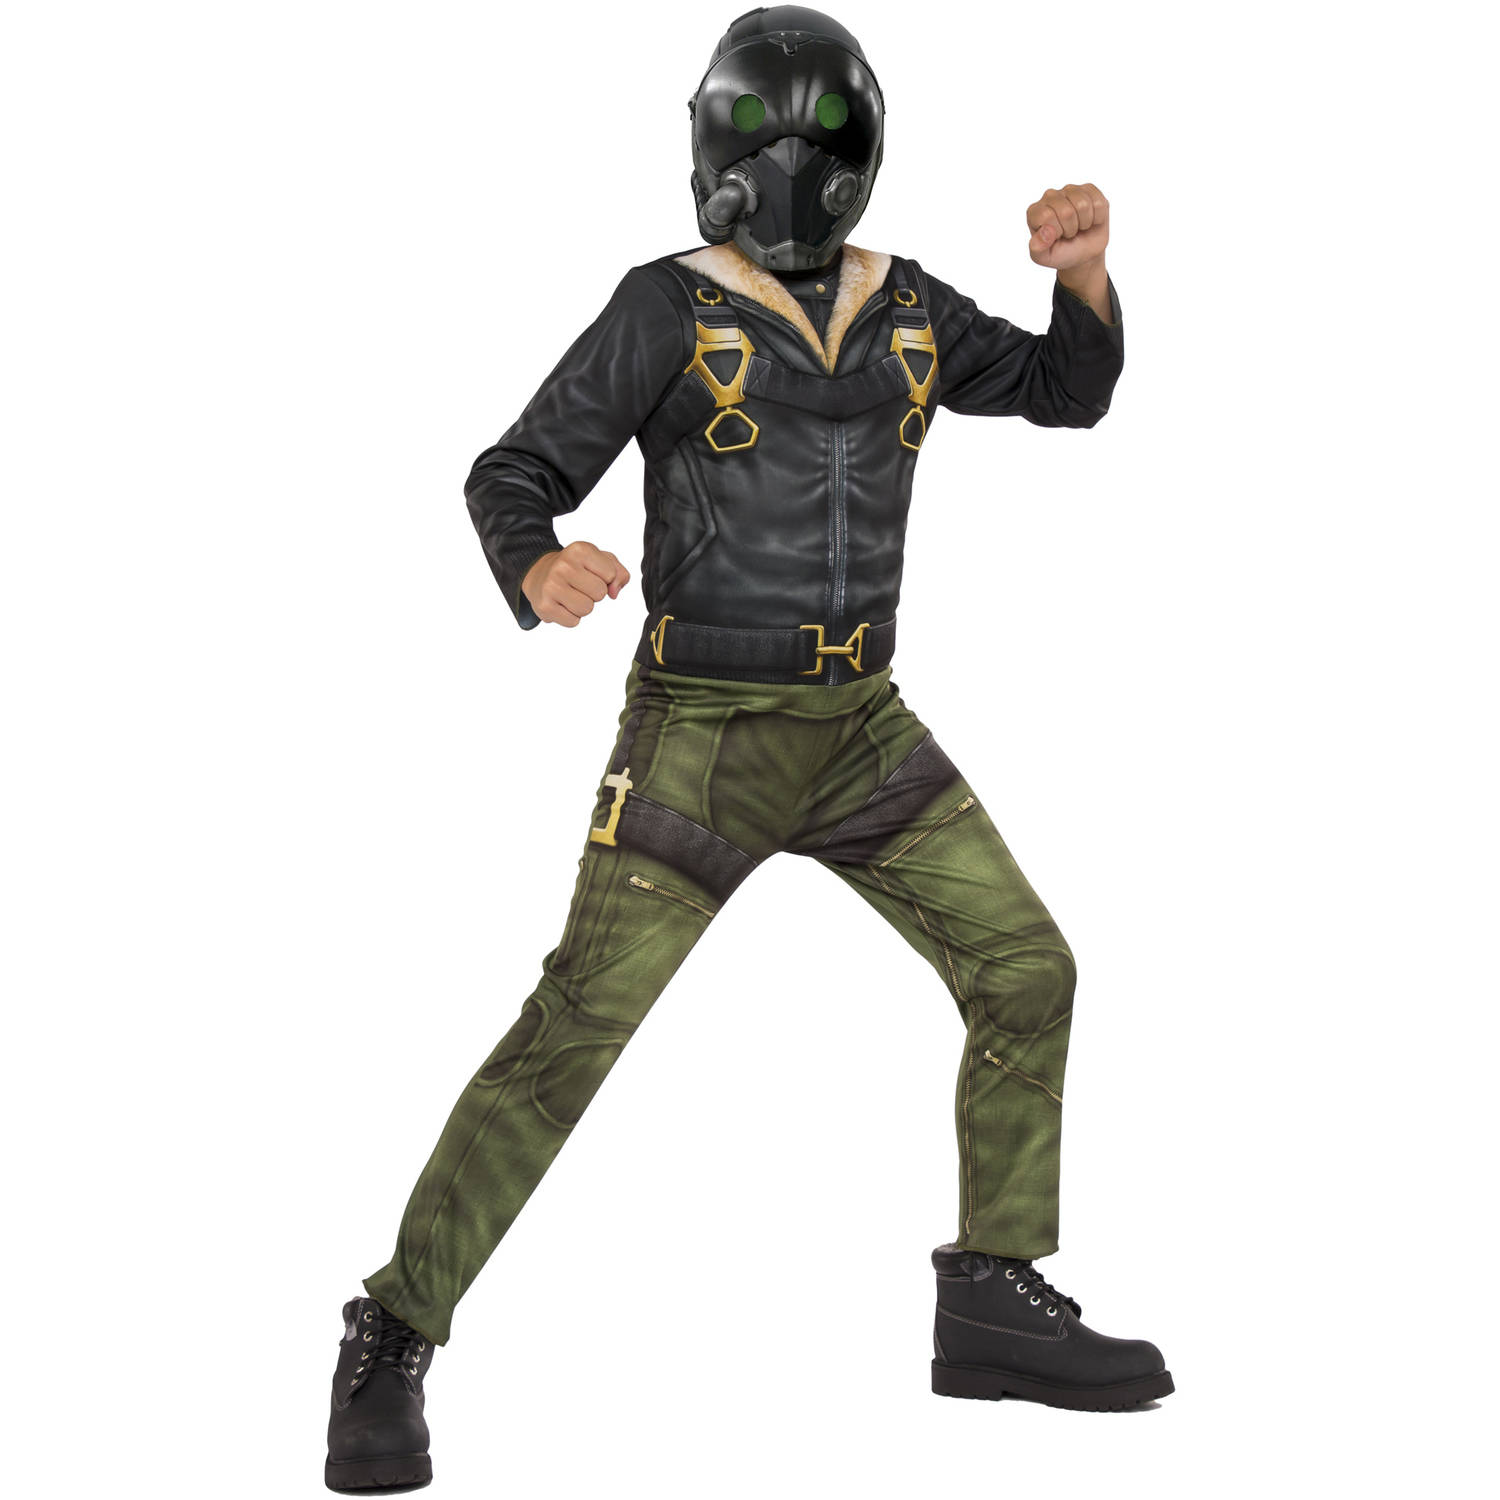 Spider-Man Homecoming Vulture Child's Costume, Small (4-6)